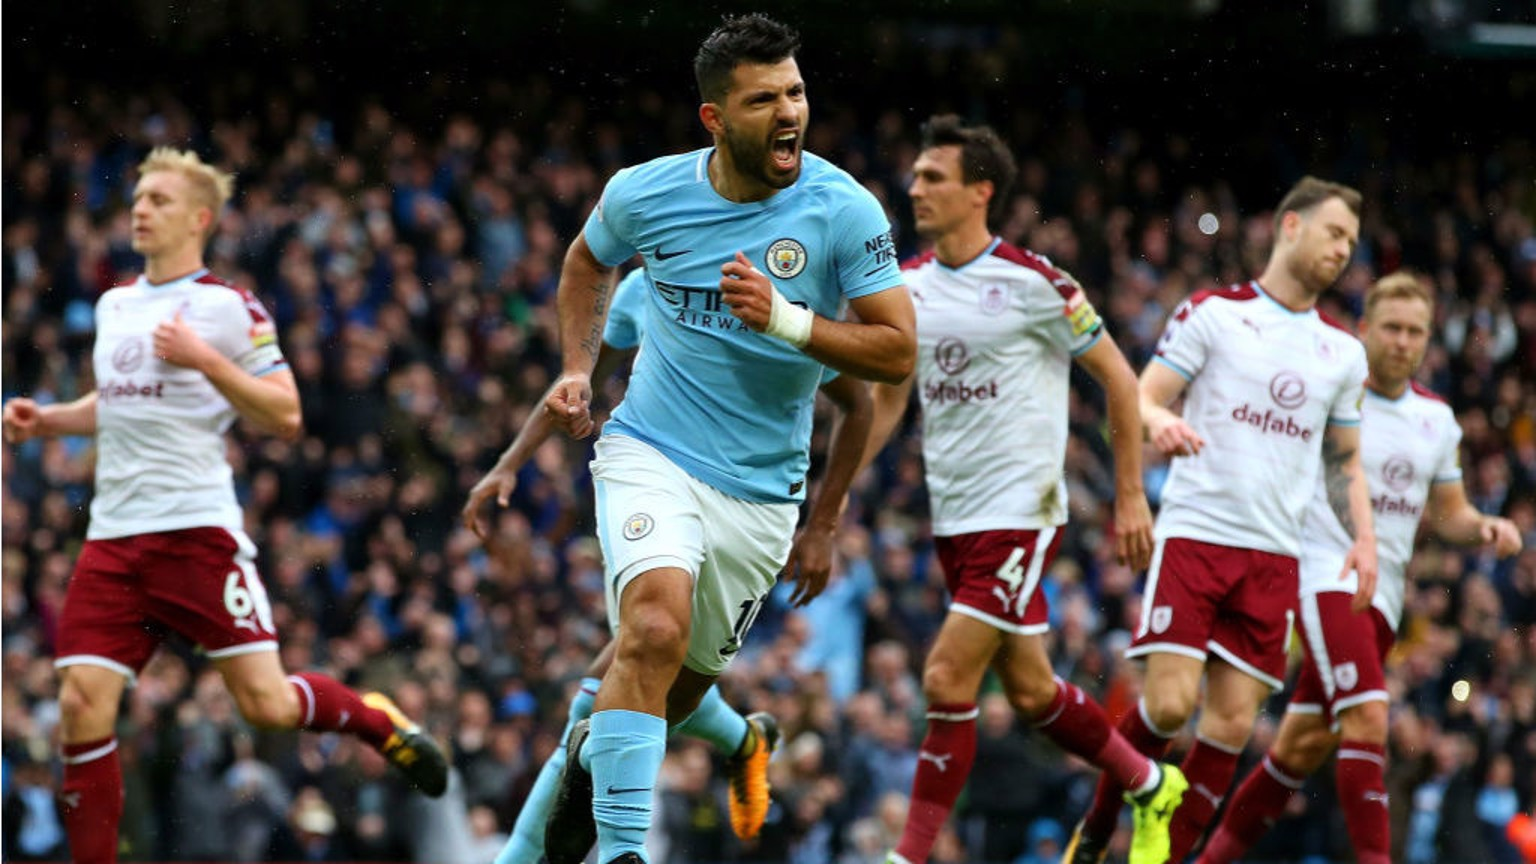 BLUE HEAVEN: Sergio Aguero celebrates after firing home his penalty